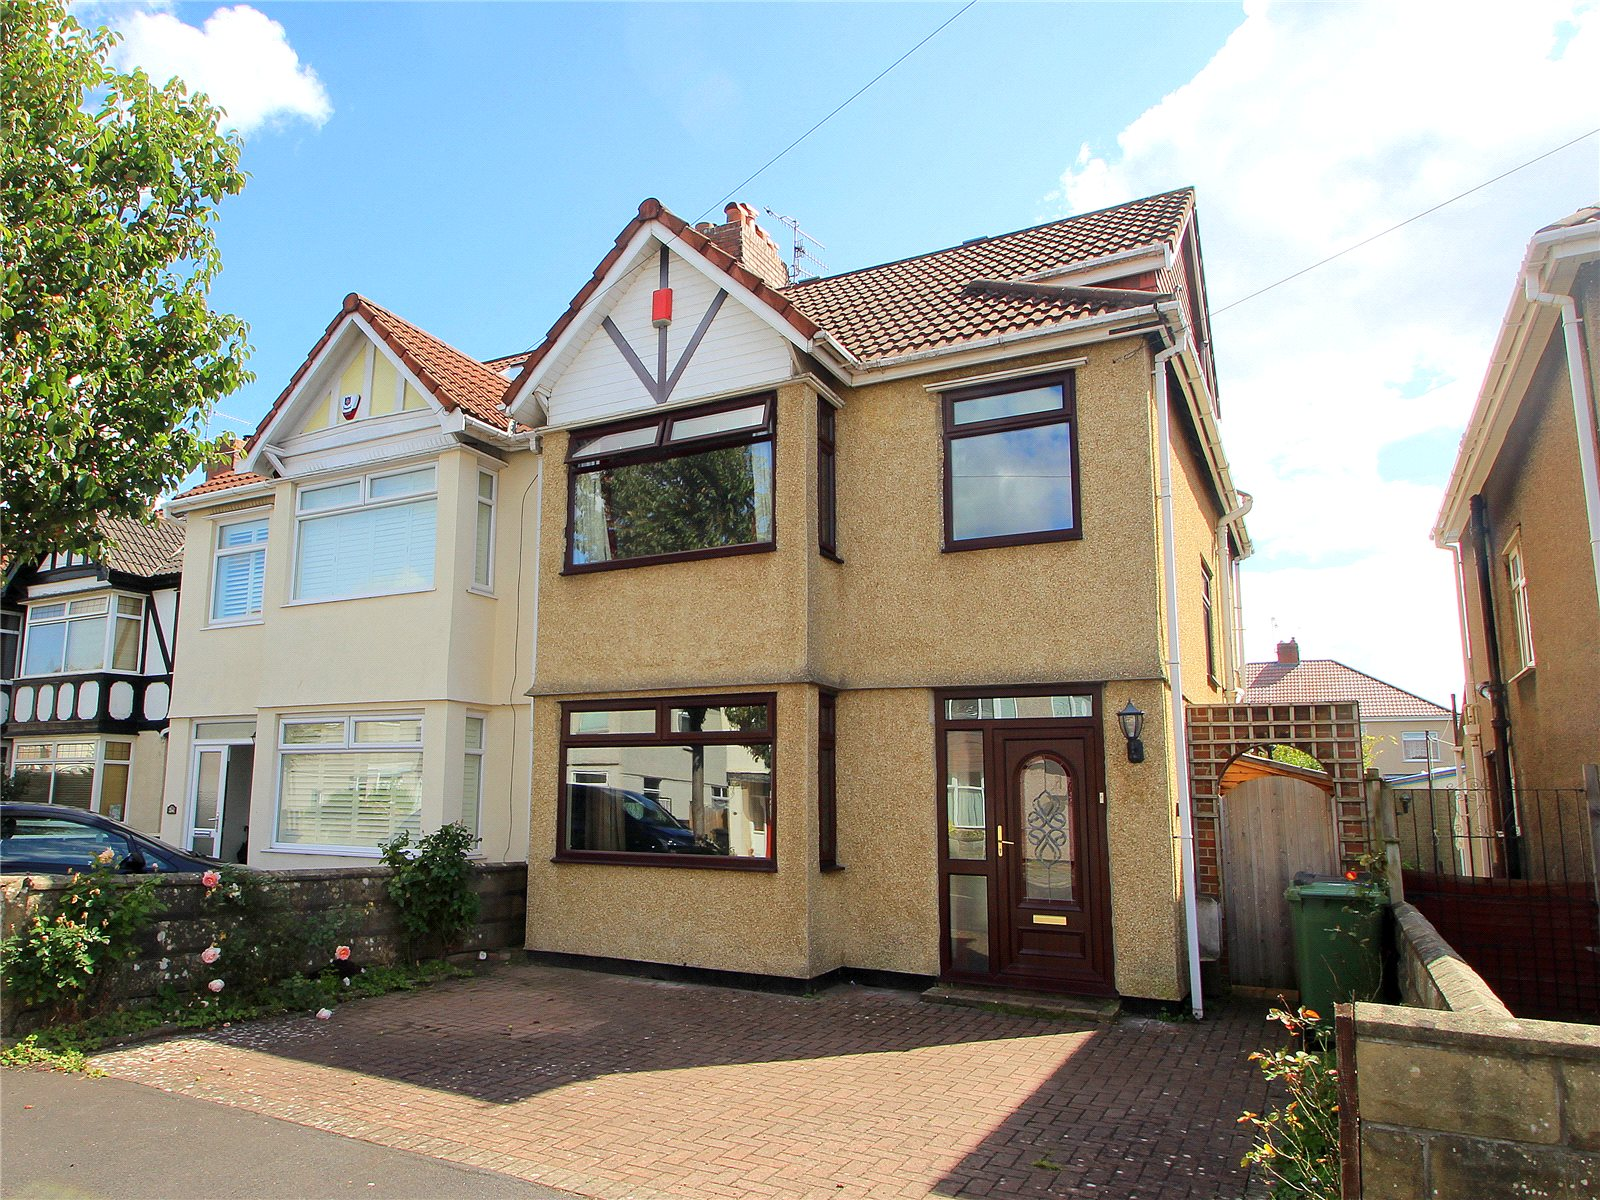 4 Bedrooms Semi Detached House for sale in Irby Road Ashton BRISTOL BS3